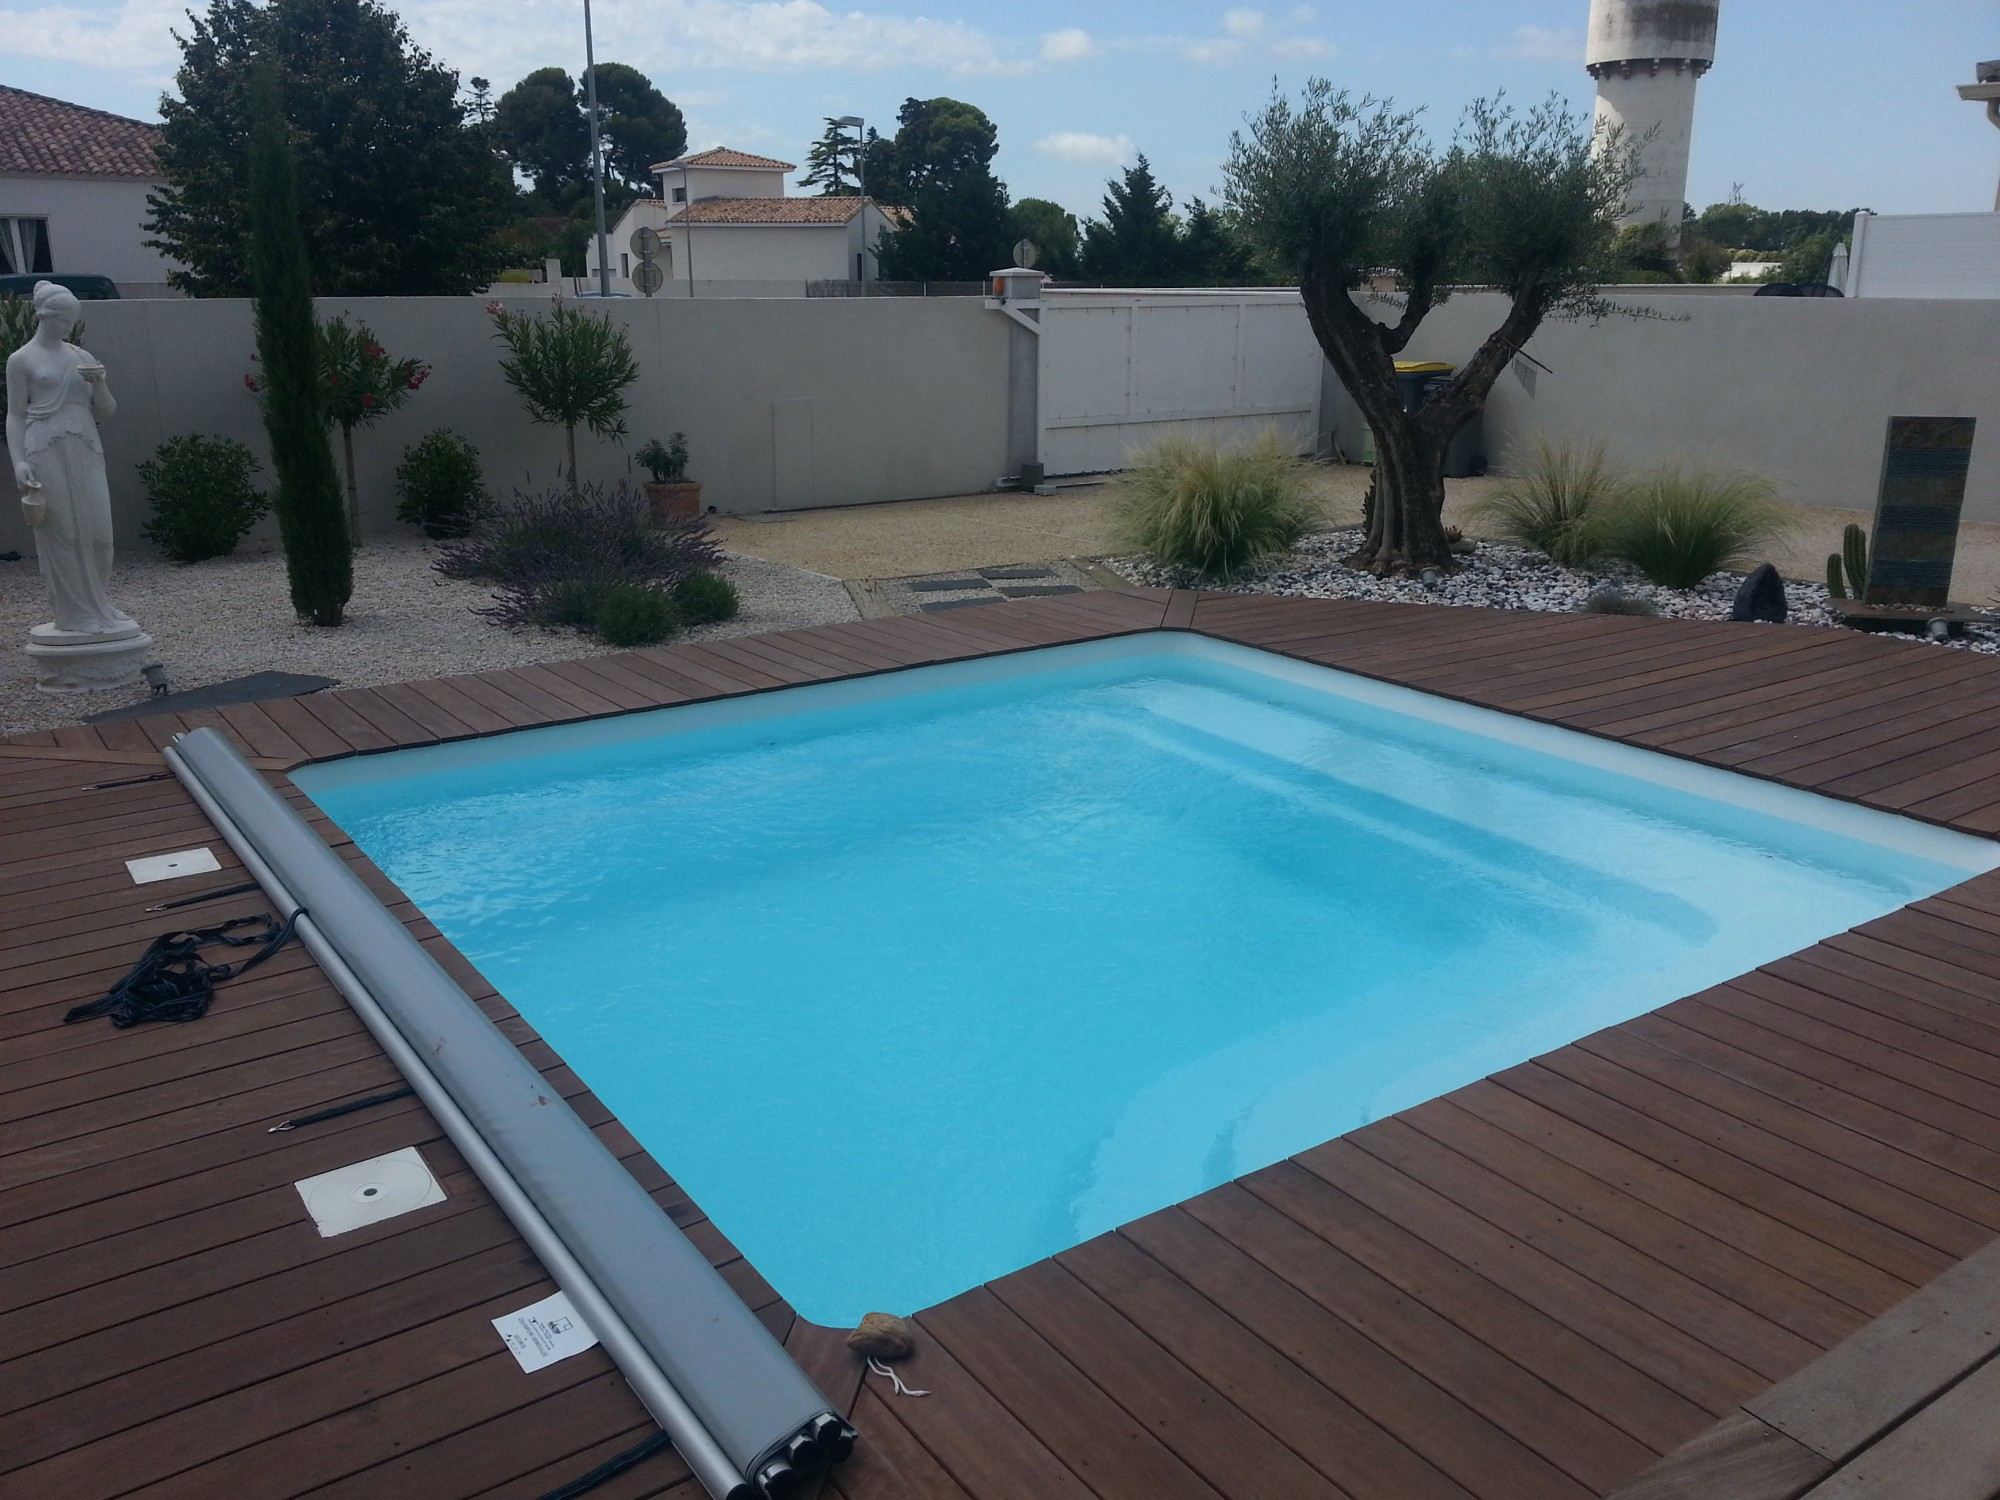 vennte et installation d 39 une piscine coque polyester 4x4 On coque piscine carree 5x5